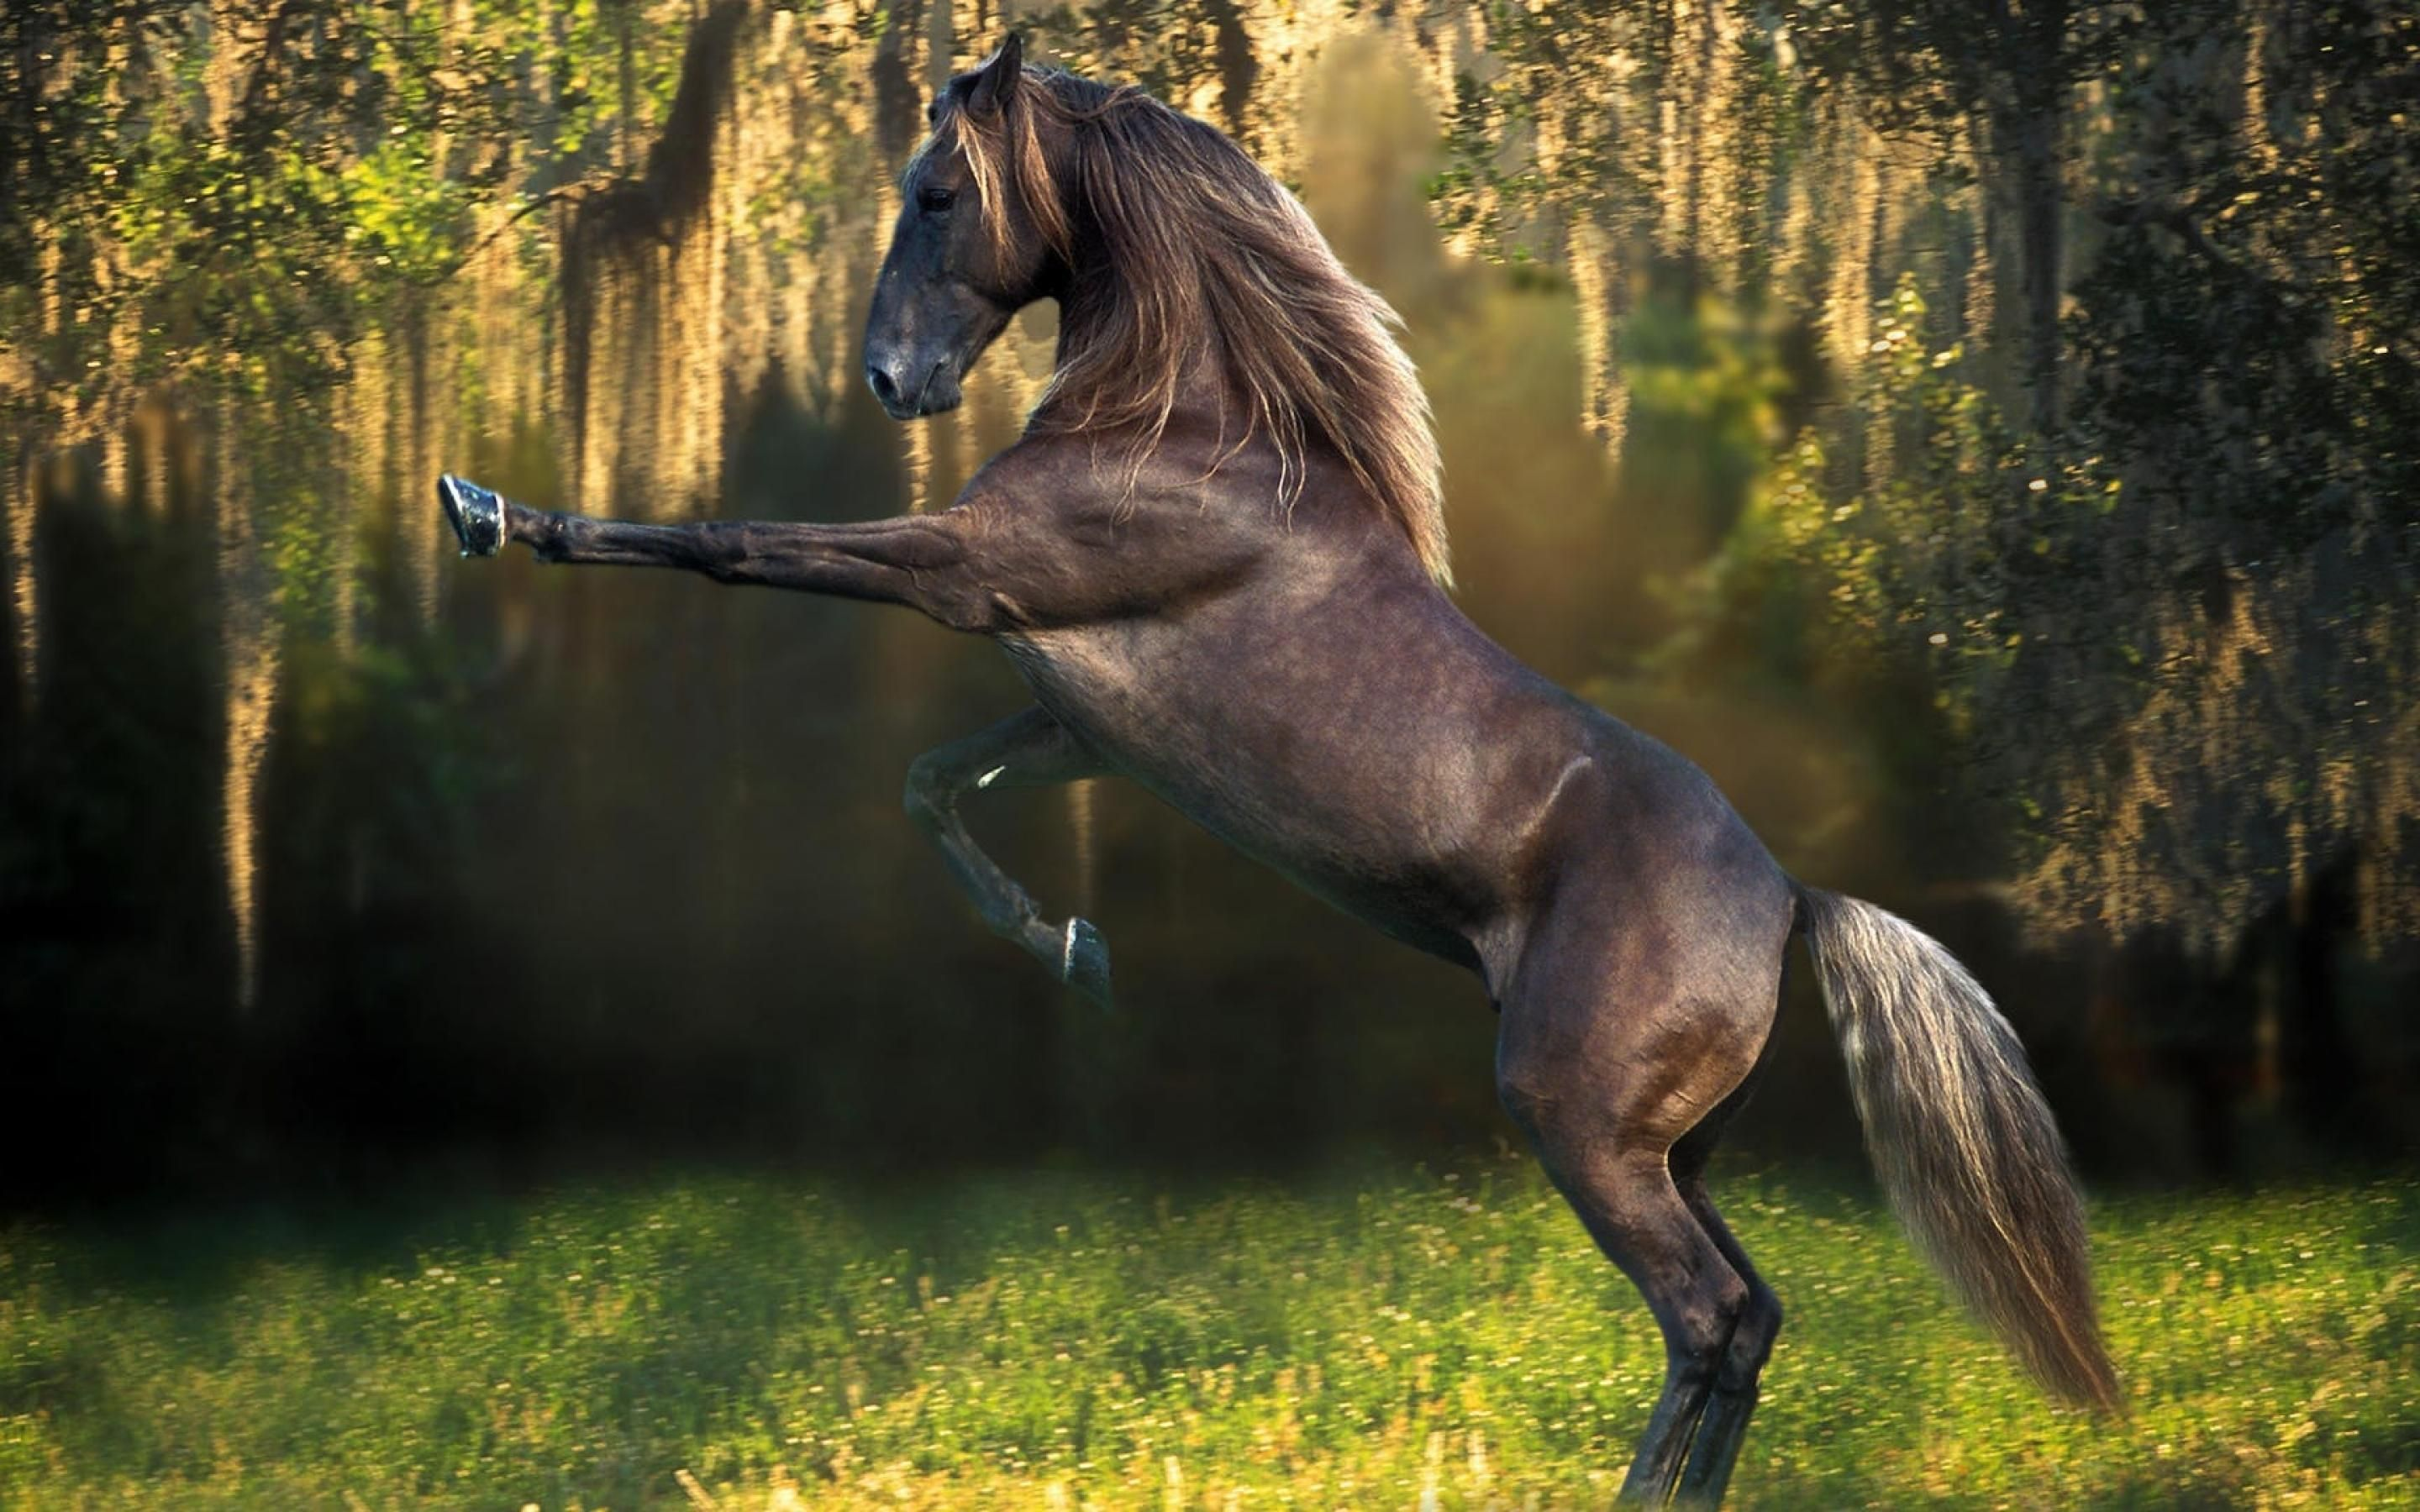 Amazing Wallpaper Horse Android - 4cb2d51398bbc5ee766bb7c1ed8c1440  Pictures_207588.jpg